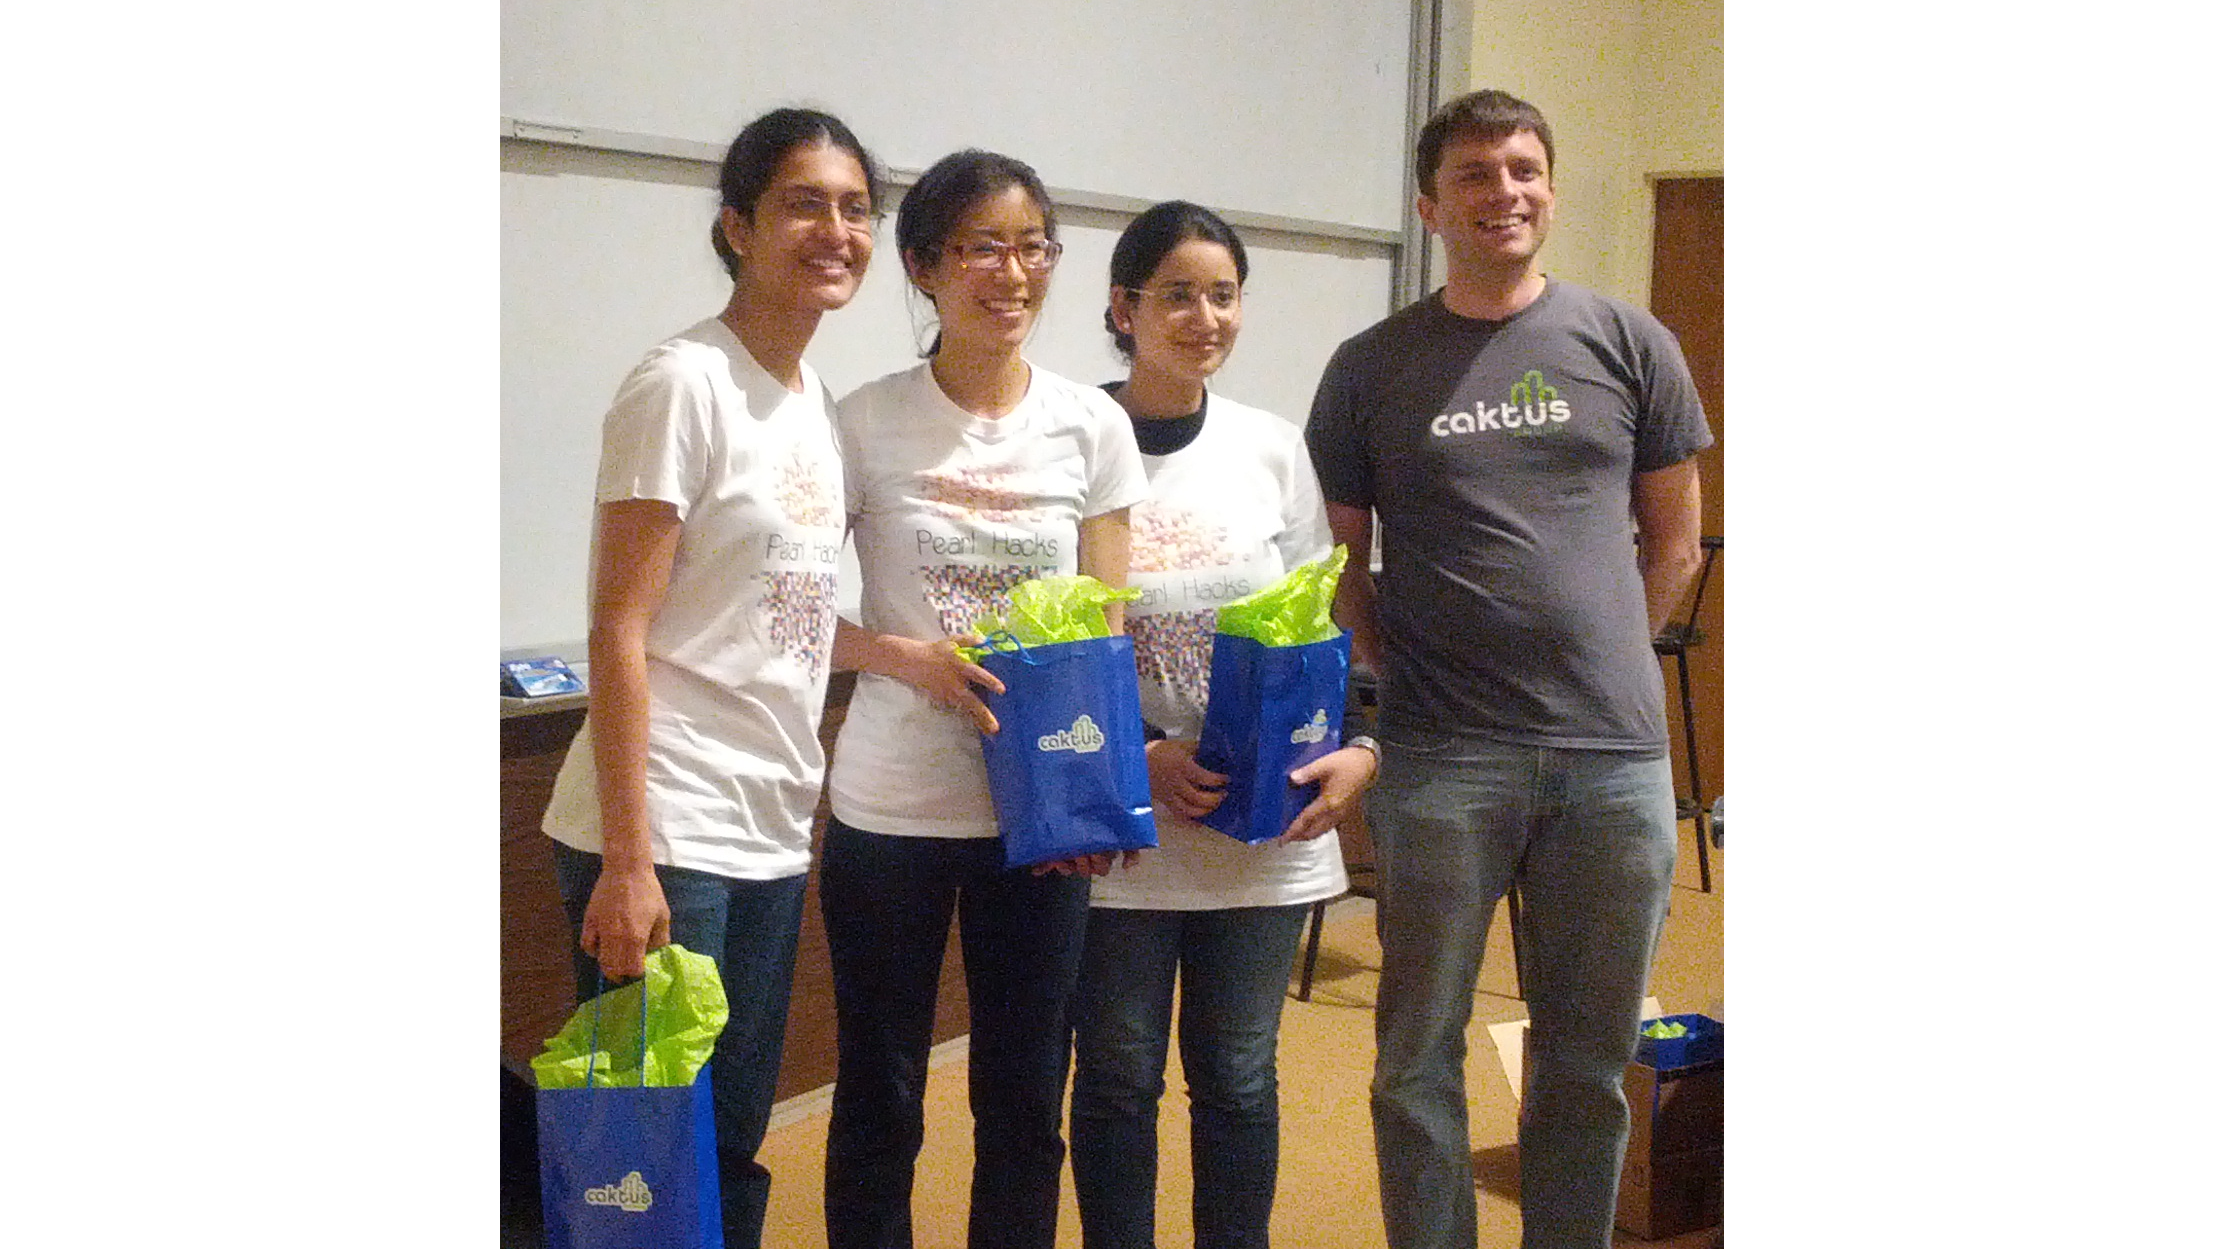 Congrats to PearlHacks Winners (Including Our Intern, Annie)!